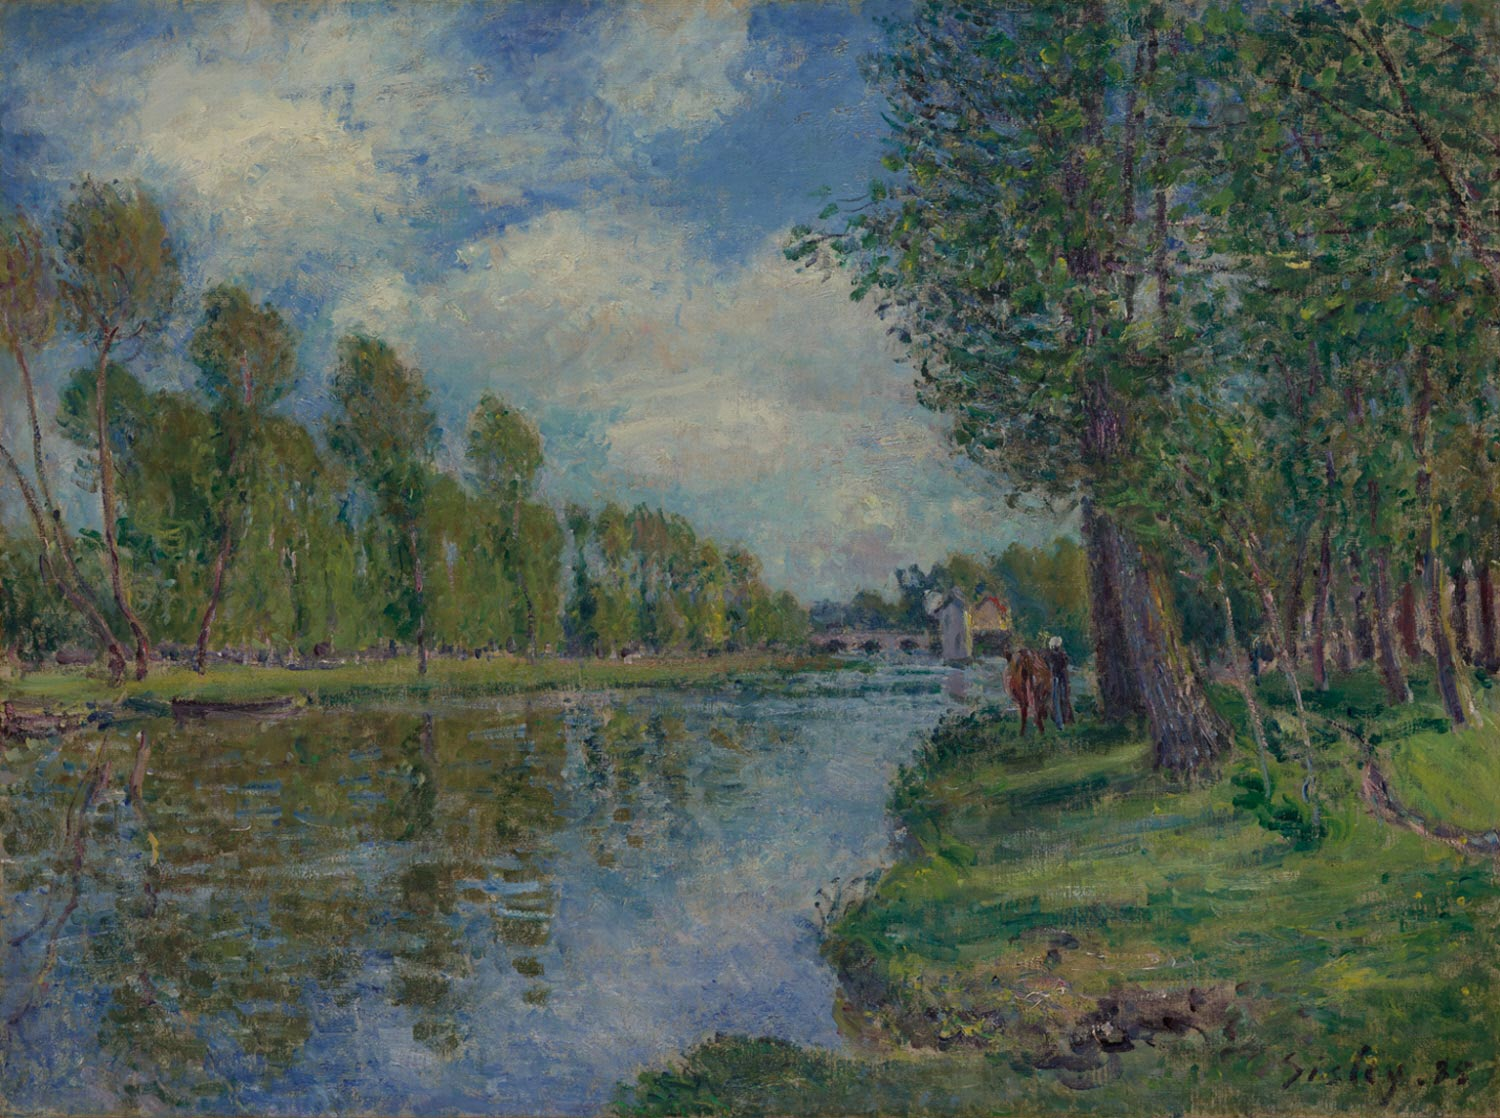 Banks of the Loing River